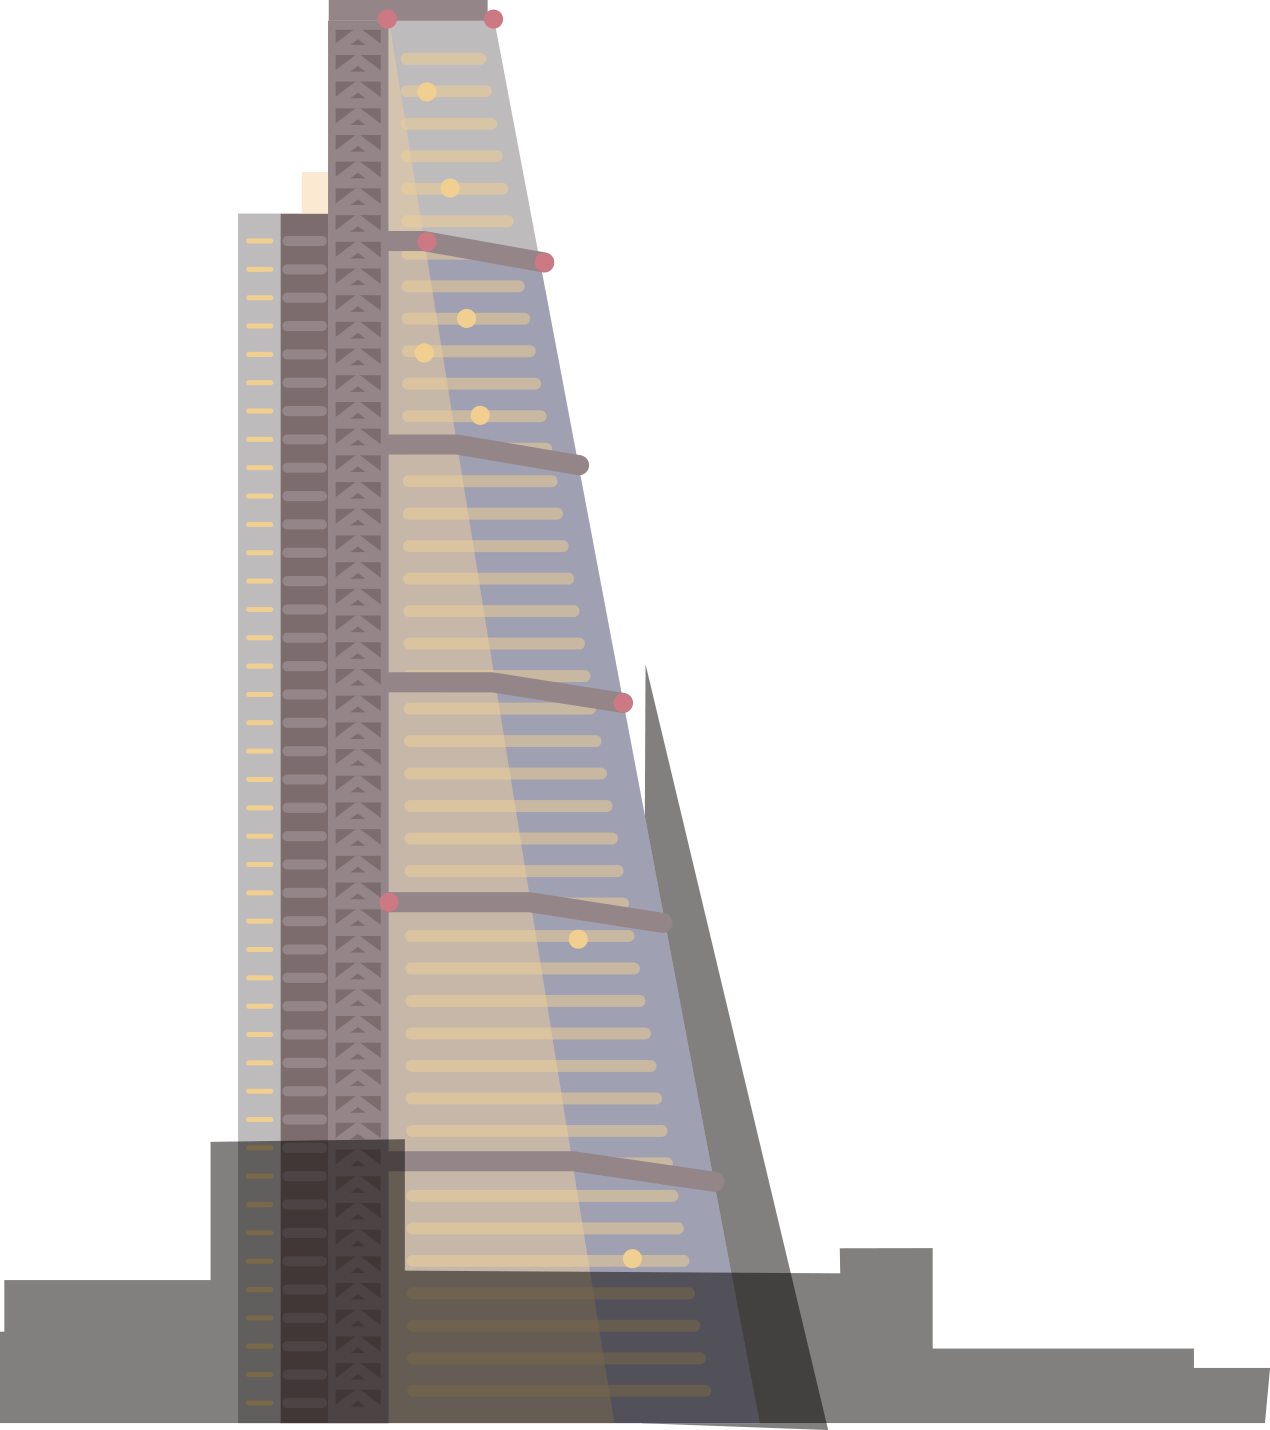 Skyscraper clipart building floor. Construction projects that